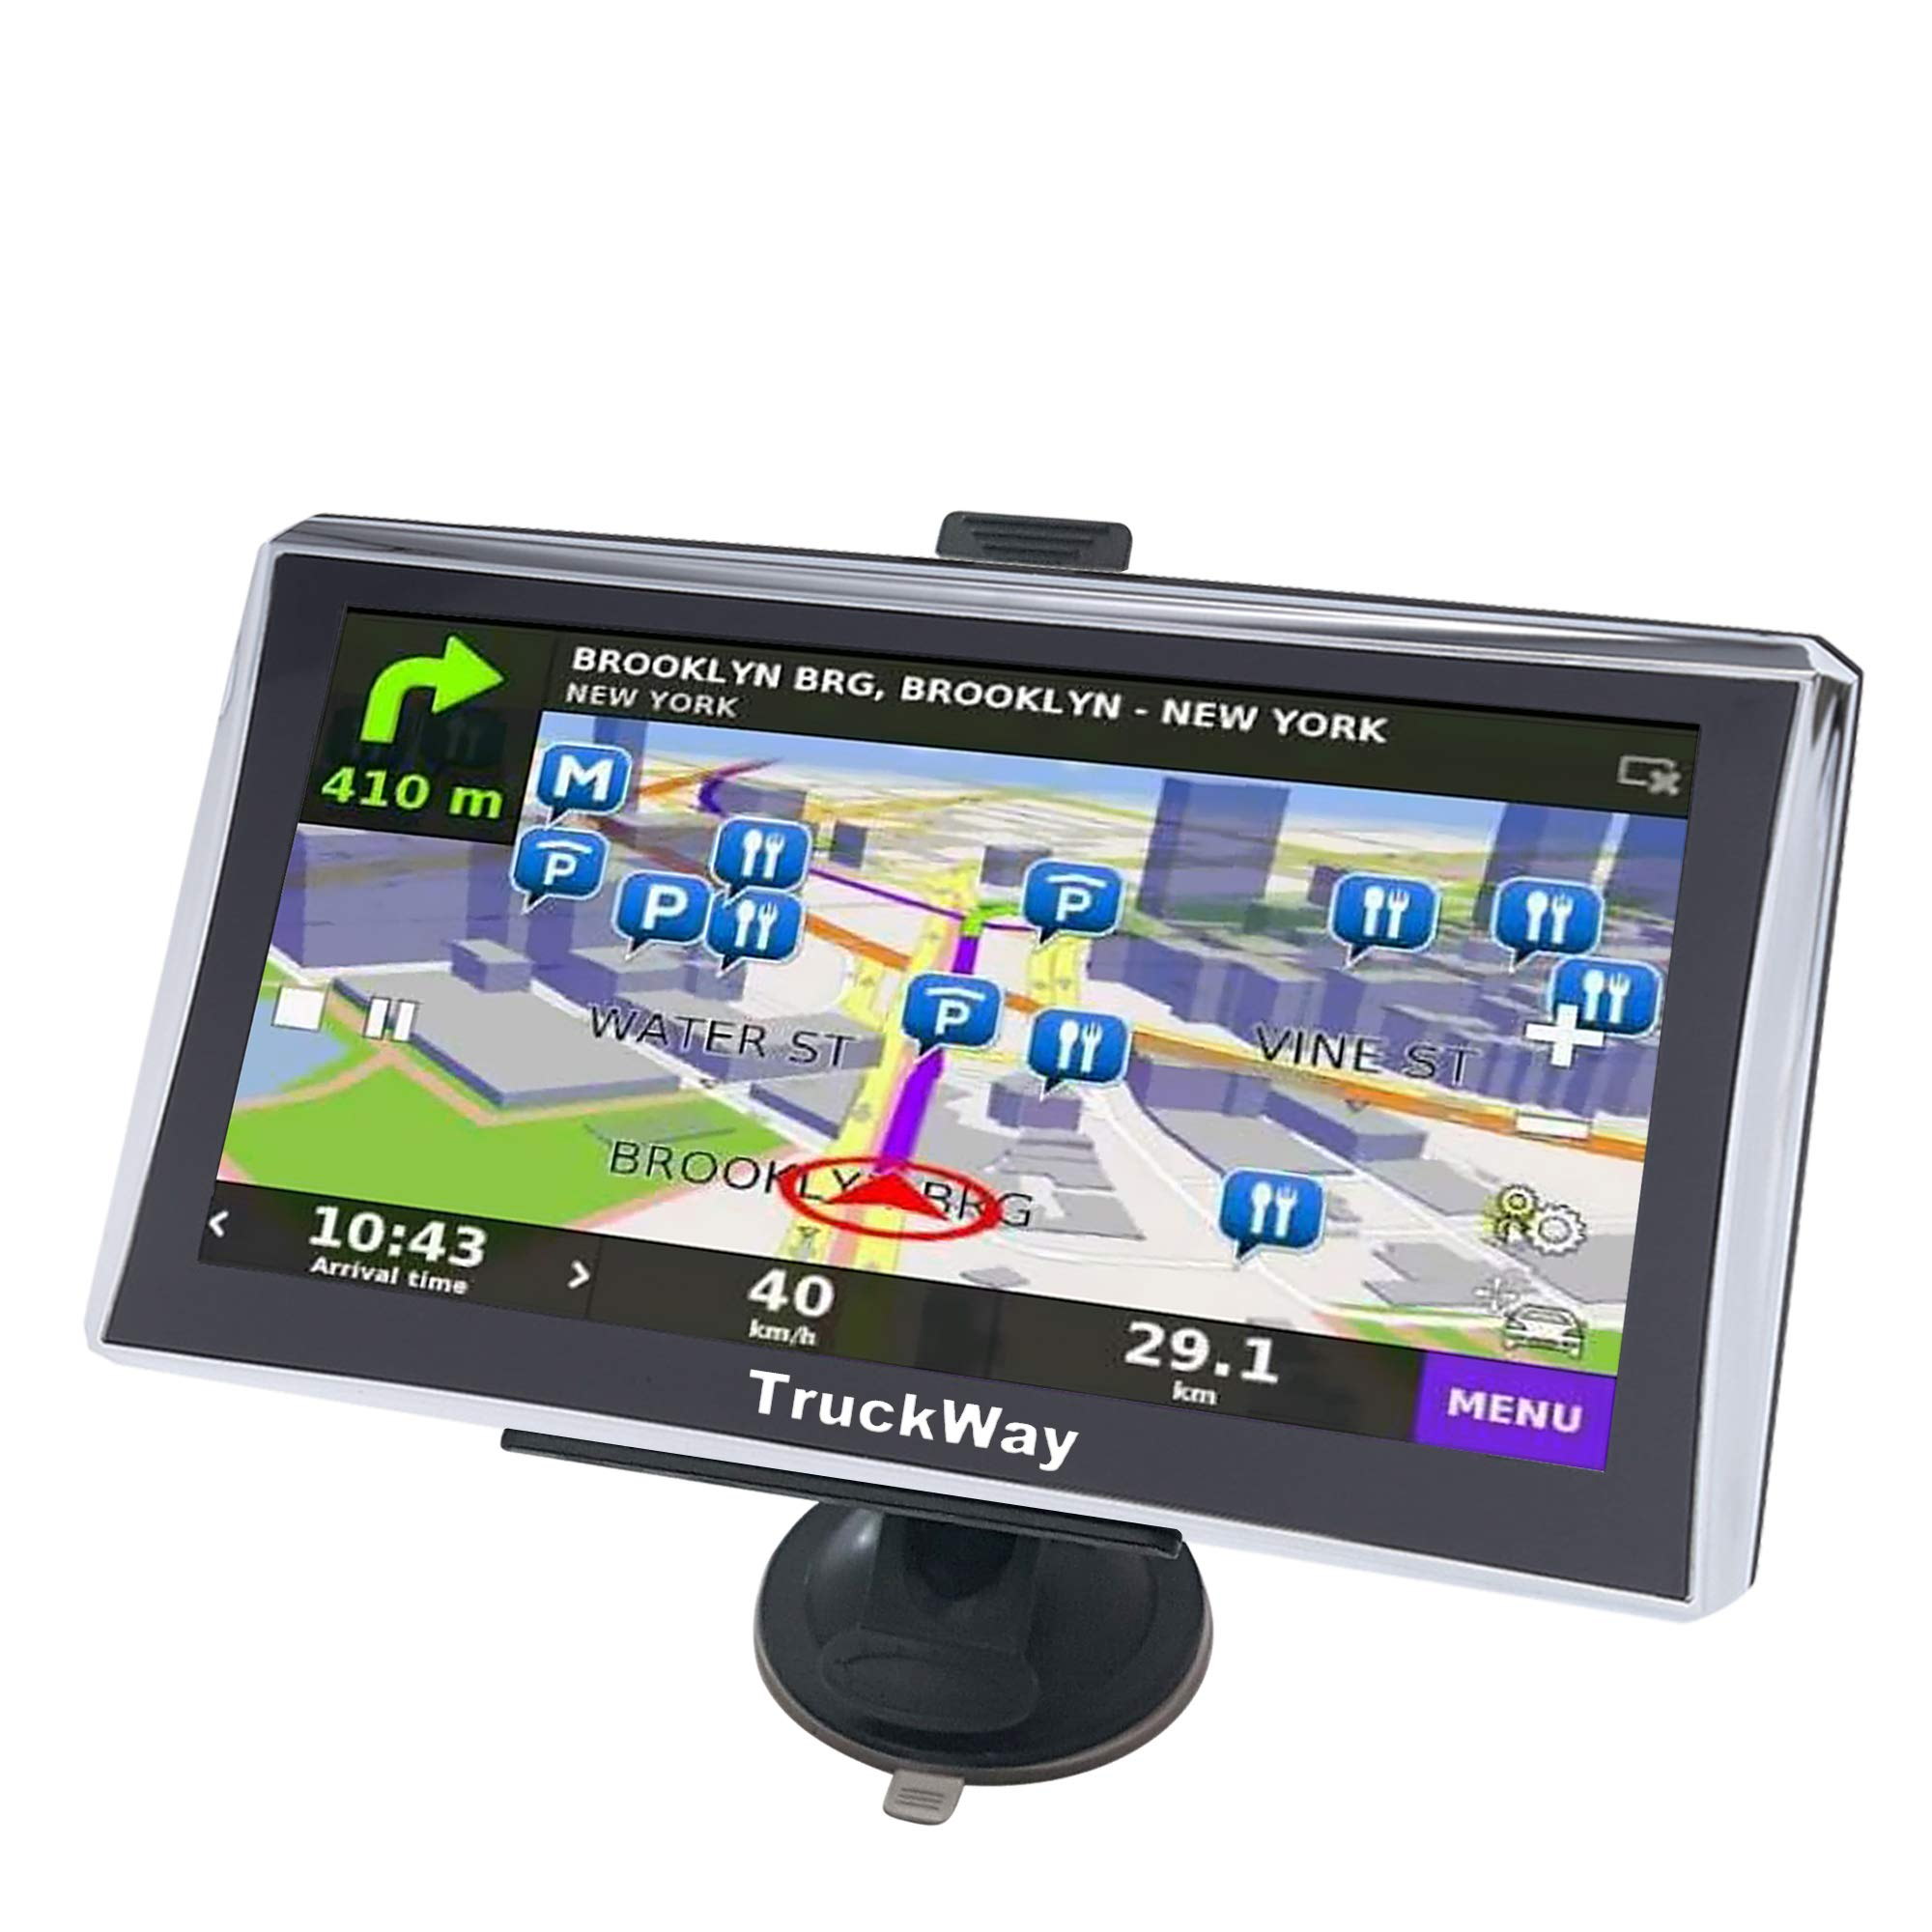 TruckWay GPS - Pro Series Model 720 - Truck GPS 7'' Inch for Truck Drivers Navigation Lifetime North America Maps (USA + Canada) 3D & 2D Maps, Touch Screen, Turn by Turn Directions